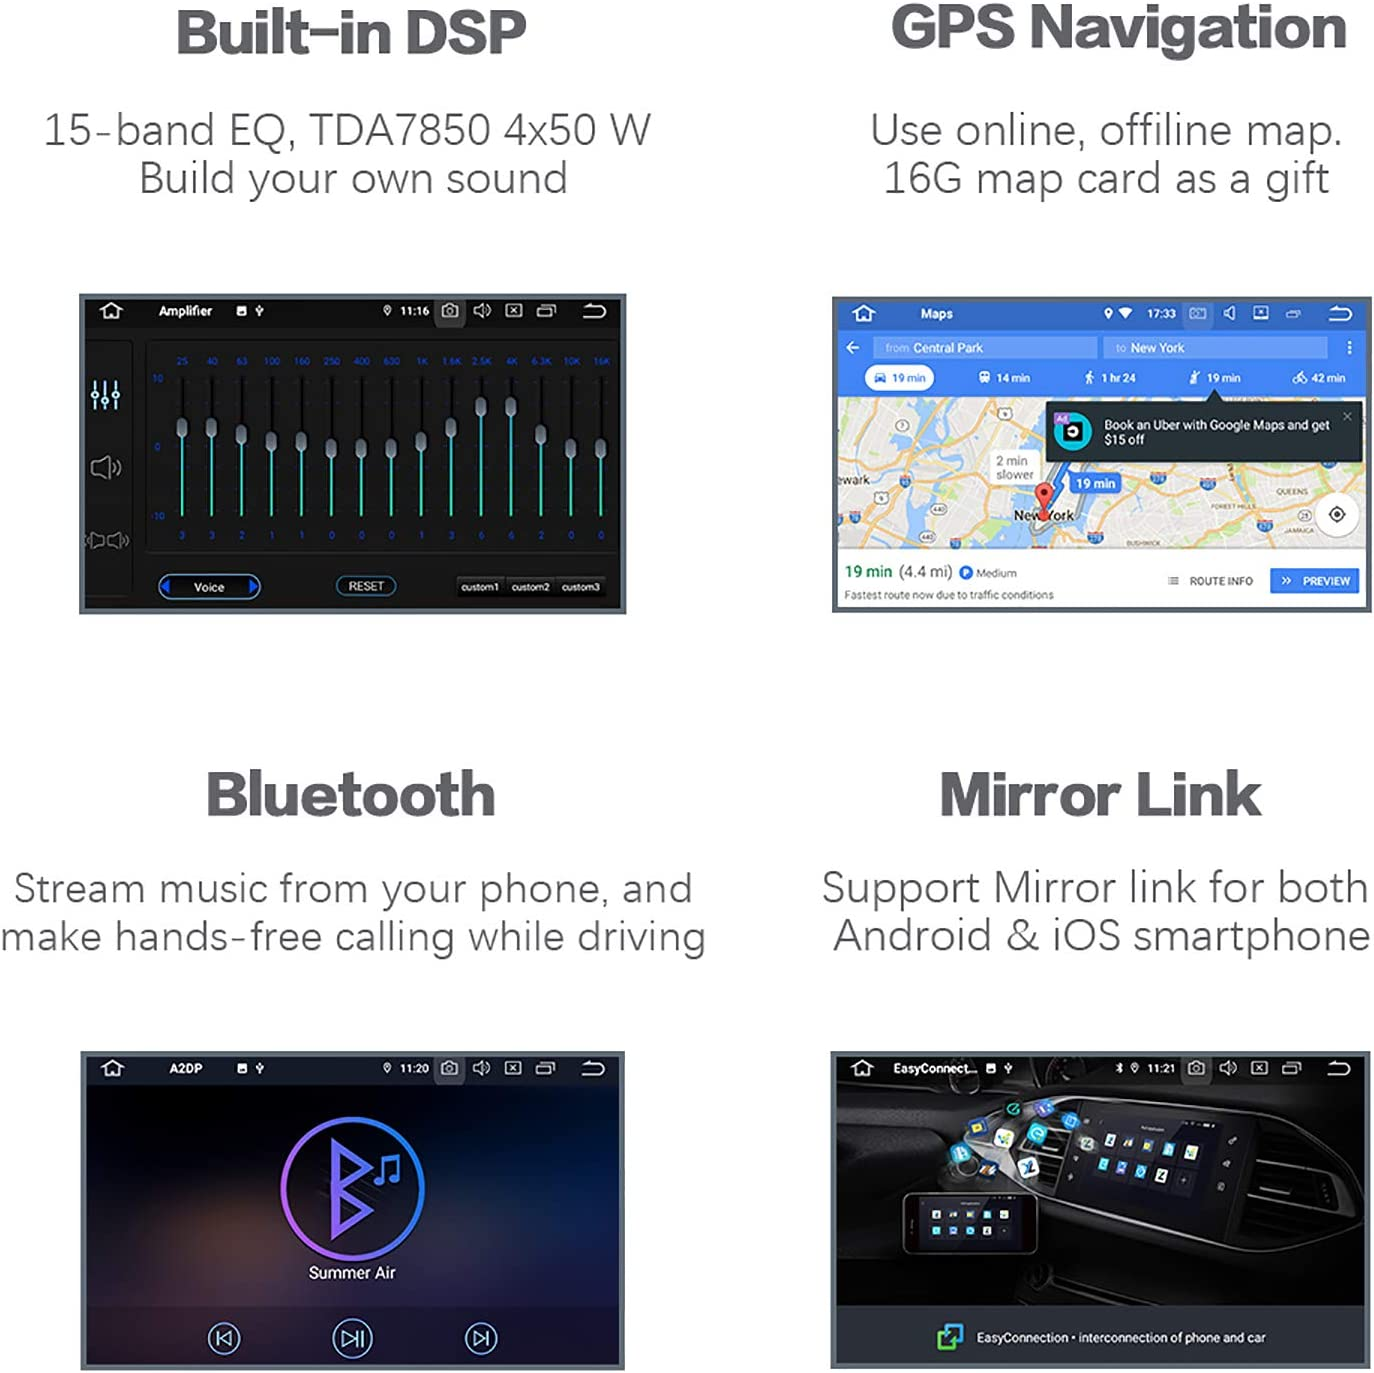 Radio with GPS Navigation 4G Ram 64G ROM Built in DSP Dash Kit GPS Meomery Card Dasaita 10 inch Large Screen Single Din Android 10.0 Car Stereo for Toyota Tundra 2007 to 2013 and Sequoia 2008 to 2018